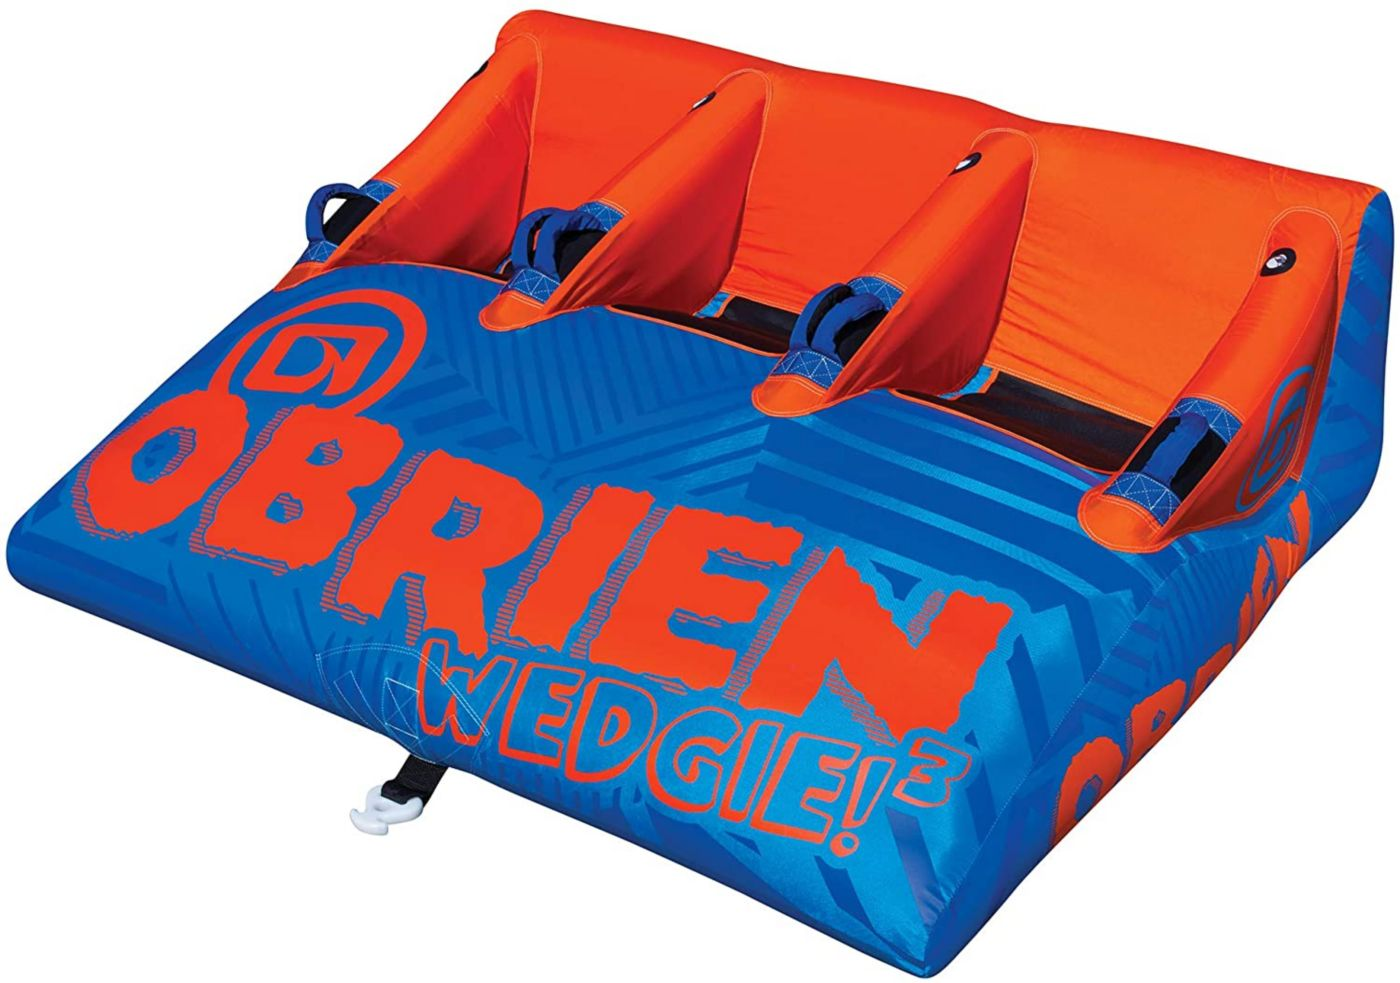 O'Brien Wedgie 3 Towable Boat Tube